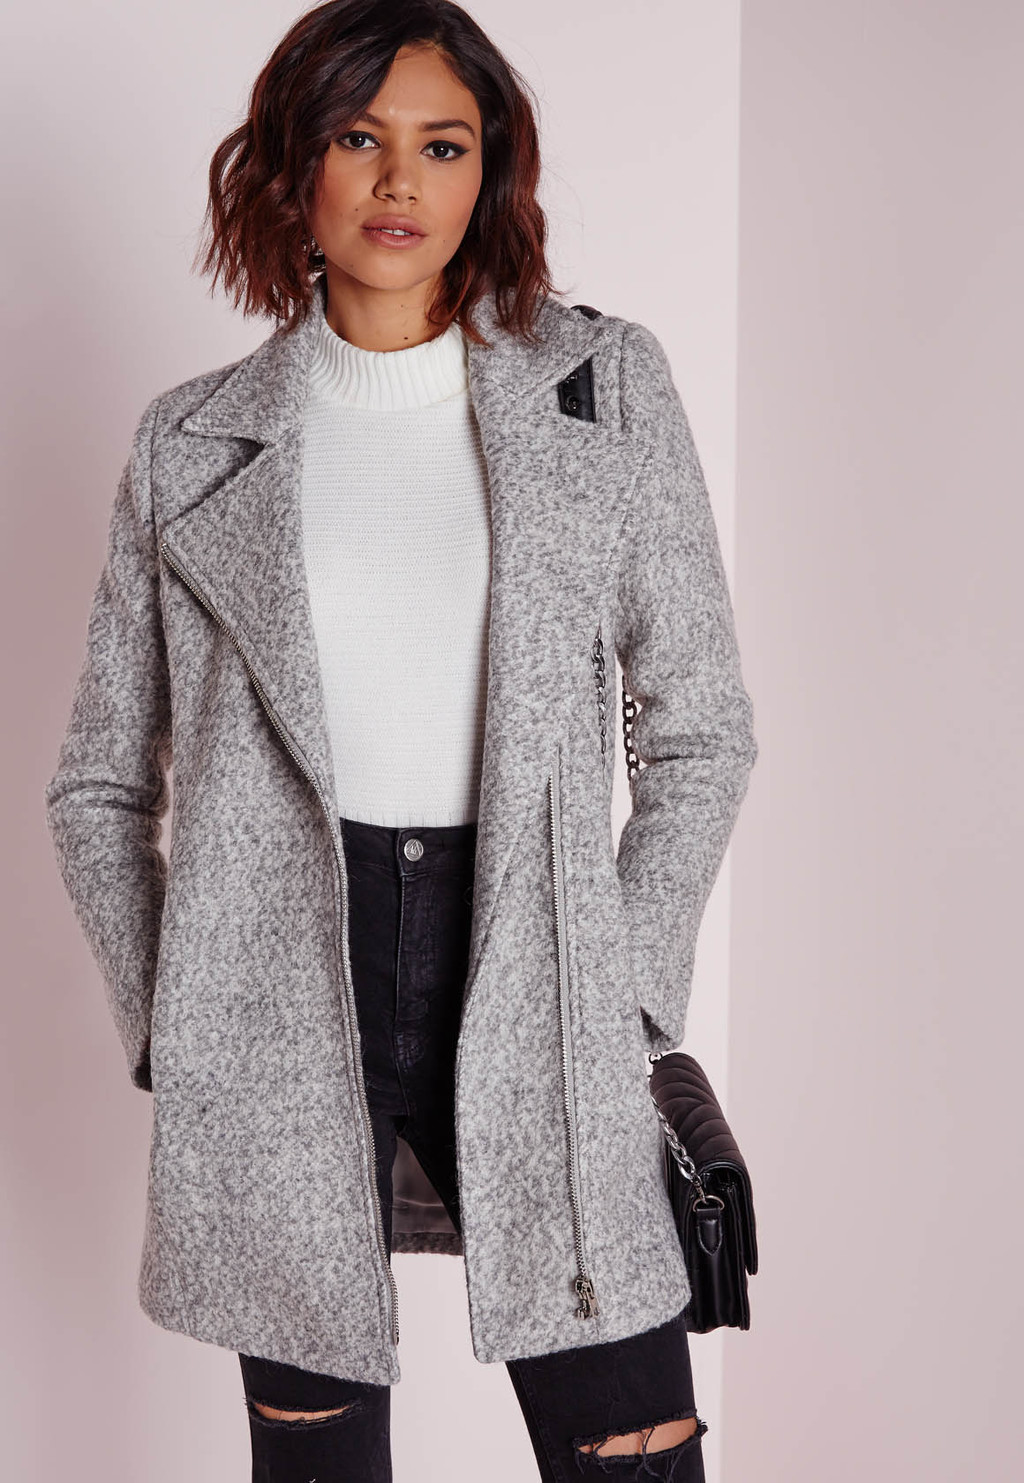 Biker Coat Grey Marl, Grey - pattern: plain; collar: asymmetric biker; style: double breasted; length: mid thigh; predominant colour: light grey; occasions: casual, work, creative work; fit: tailored/fitted; fibres: wool - mix; sleeve length: long sleeve; sleeve style: standard; collar break: medium; pattern type: fabric; texture group: woven bulky/heavy; season: s/s 2016; wardrobe: basic